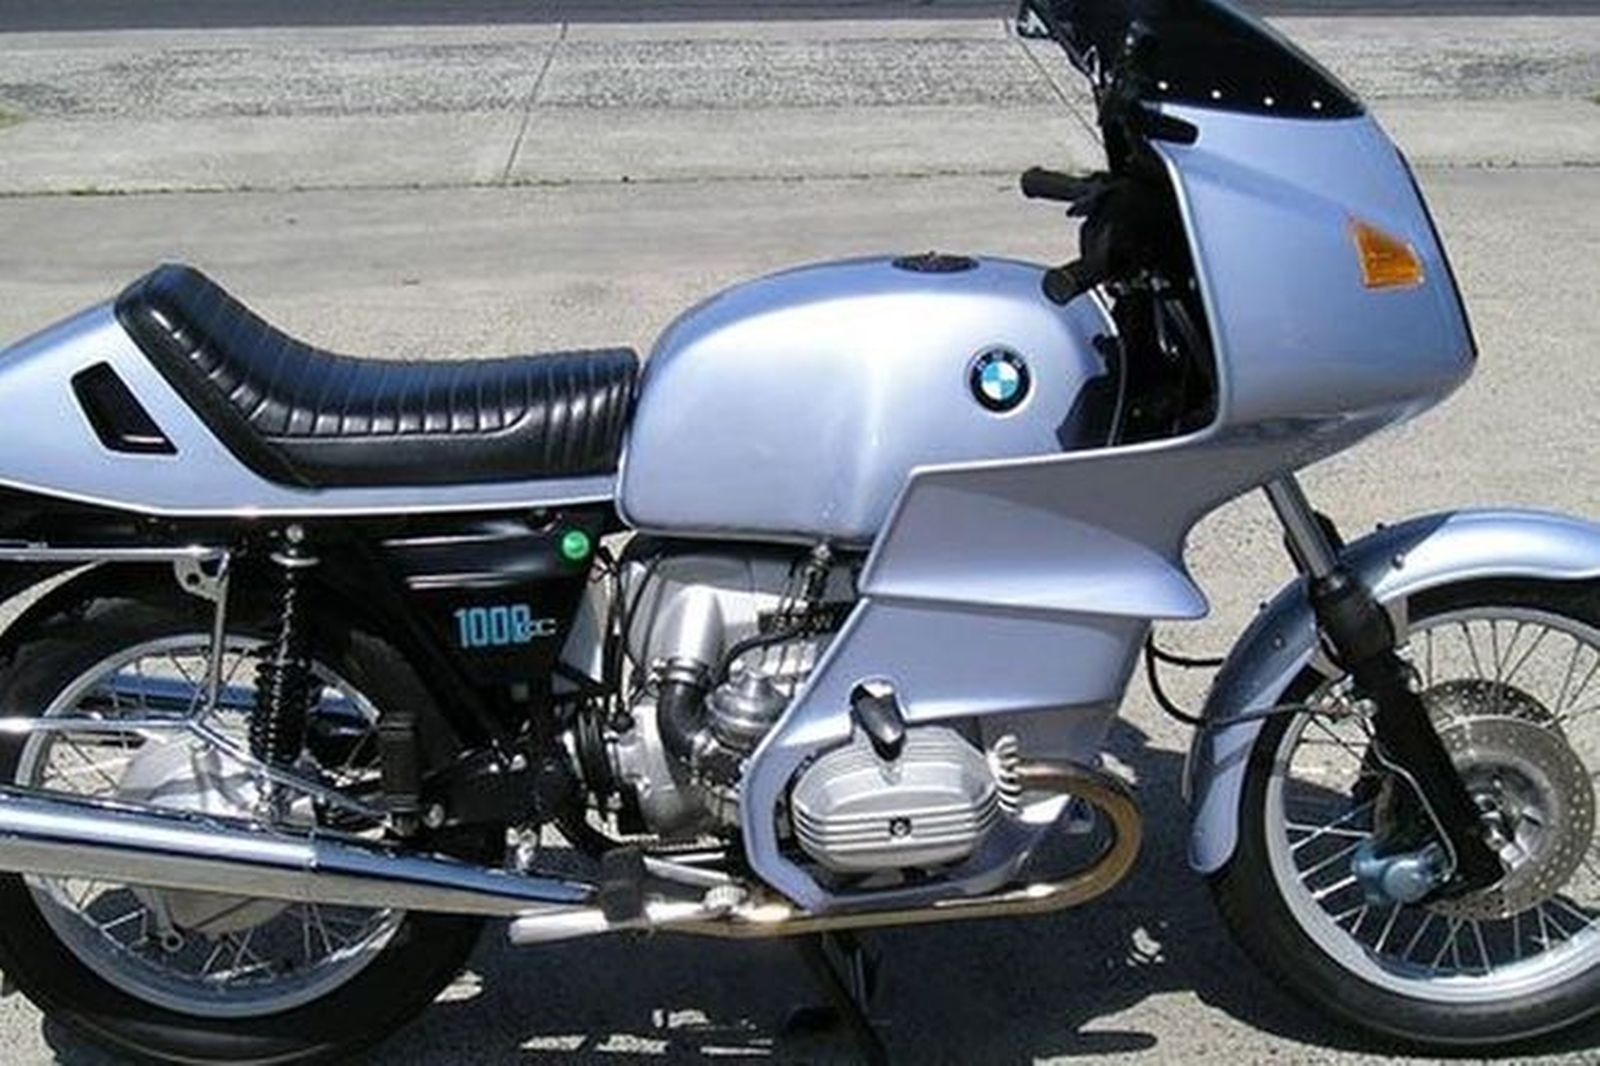 Sold: BMW R100 RS Motorcycle Auctions - Lot 55 - Shannons